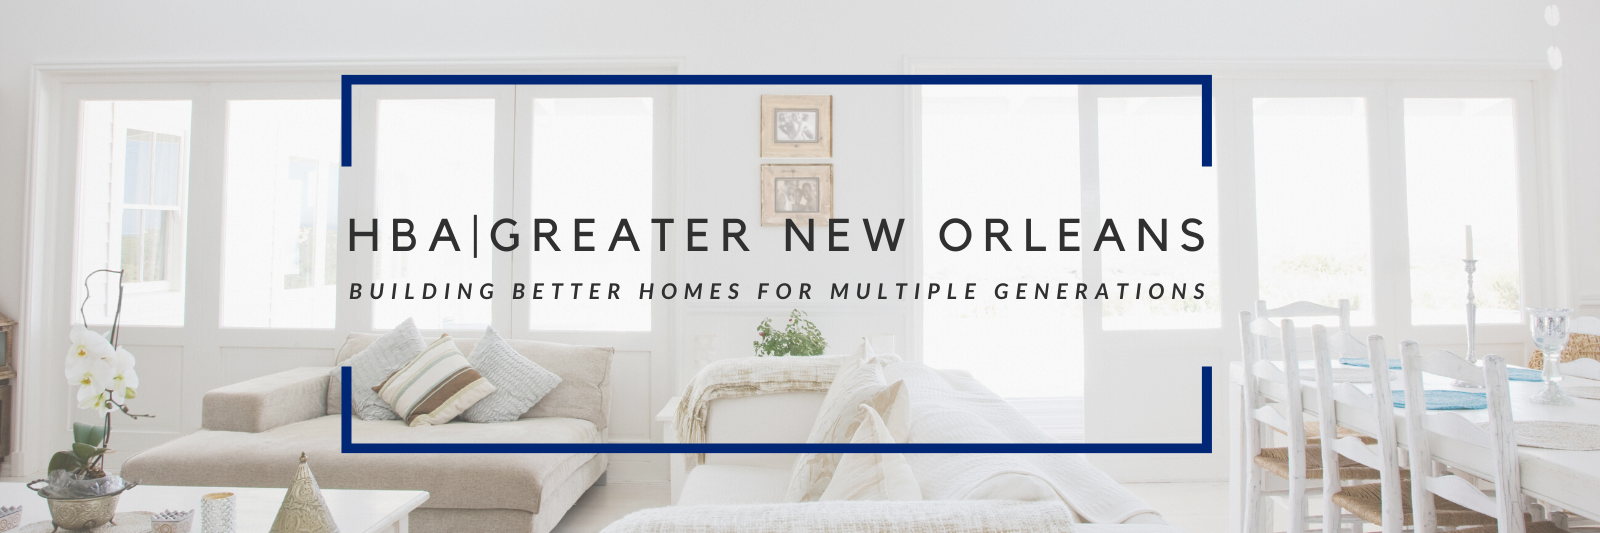 HBA-Greater-New-Orleans-Website-Cover-Gallery-Photo.png